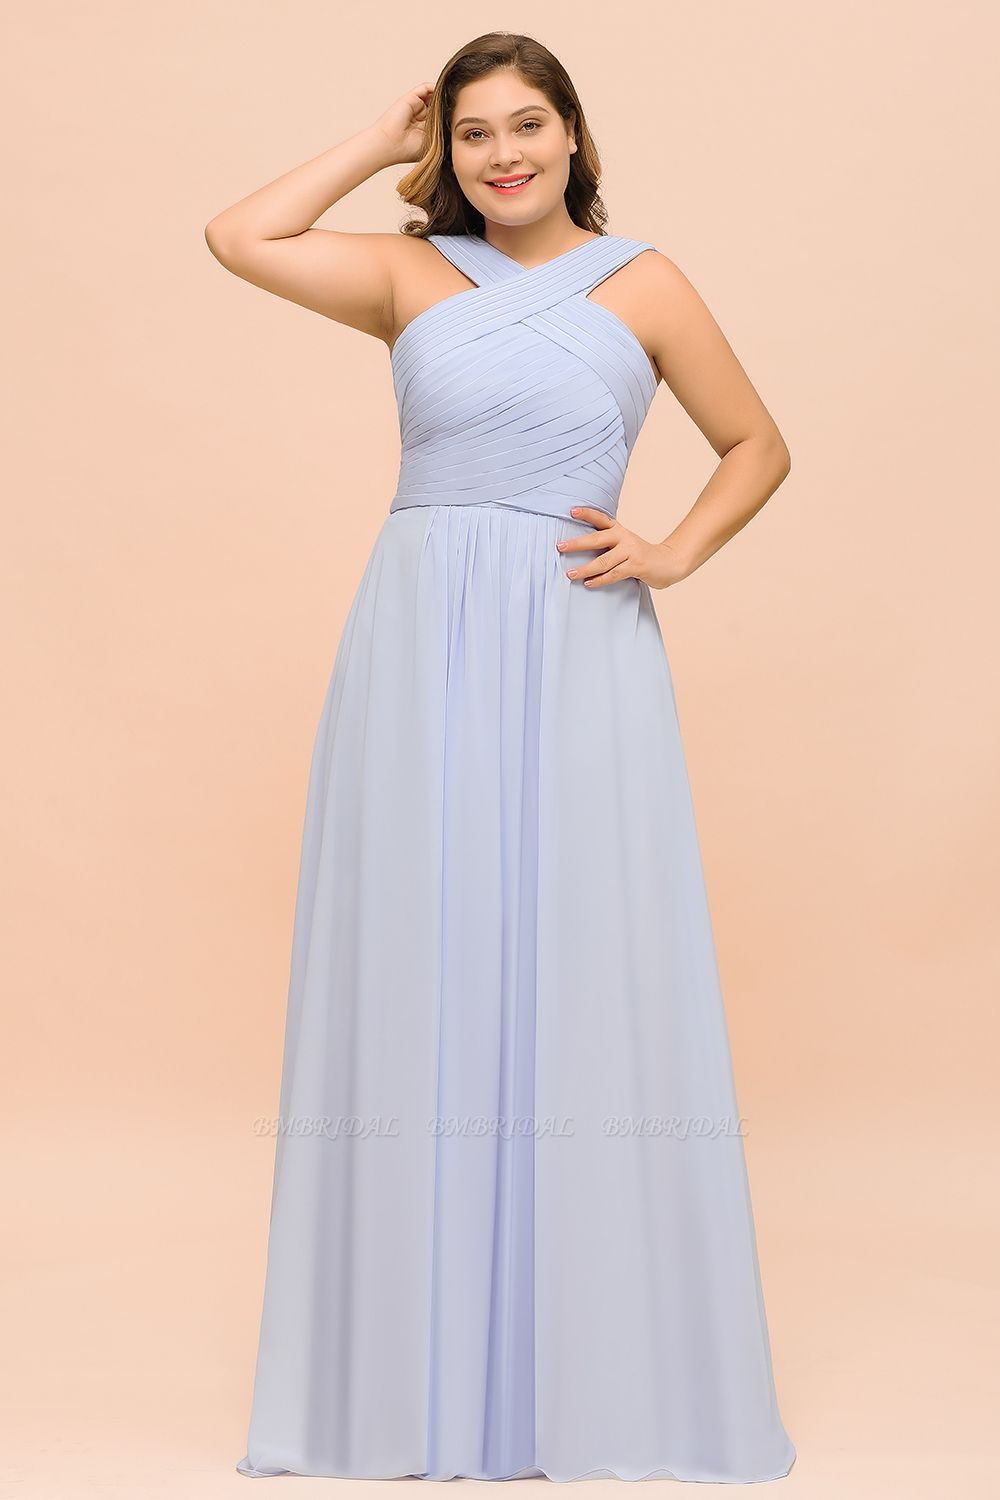 Plus Size Affordable Lavender Chiffon Bridesmaid Dresses with Ruffle